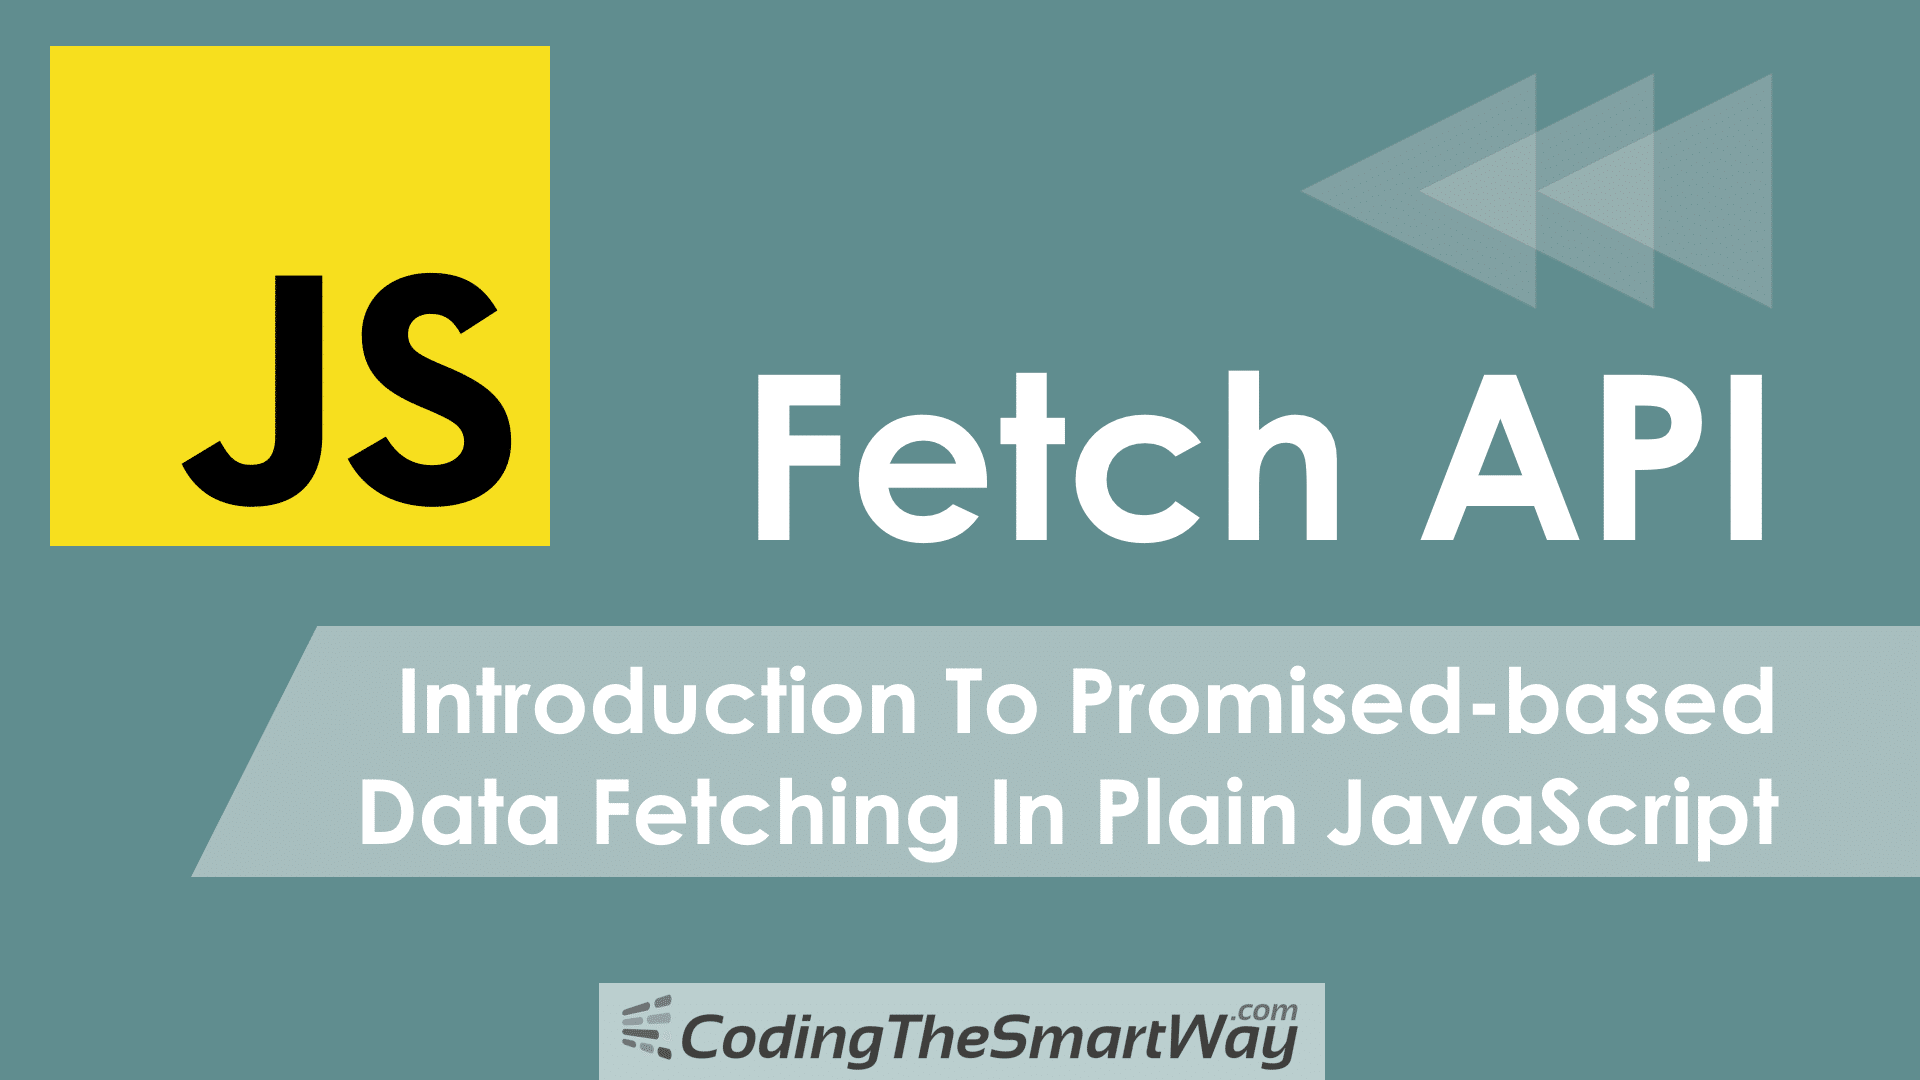 Fetch API - Introduction To Promised-based Data Fetching In Plain